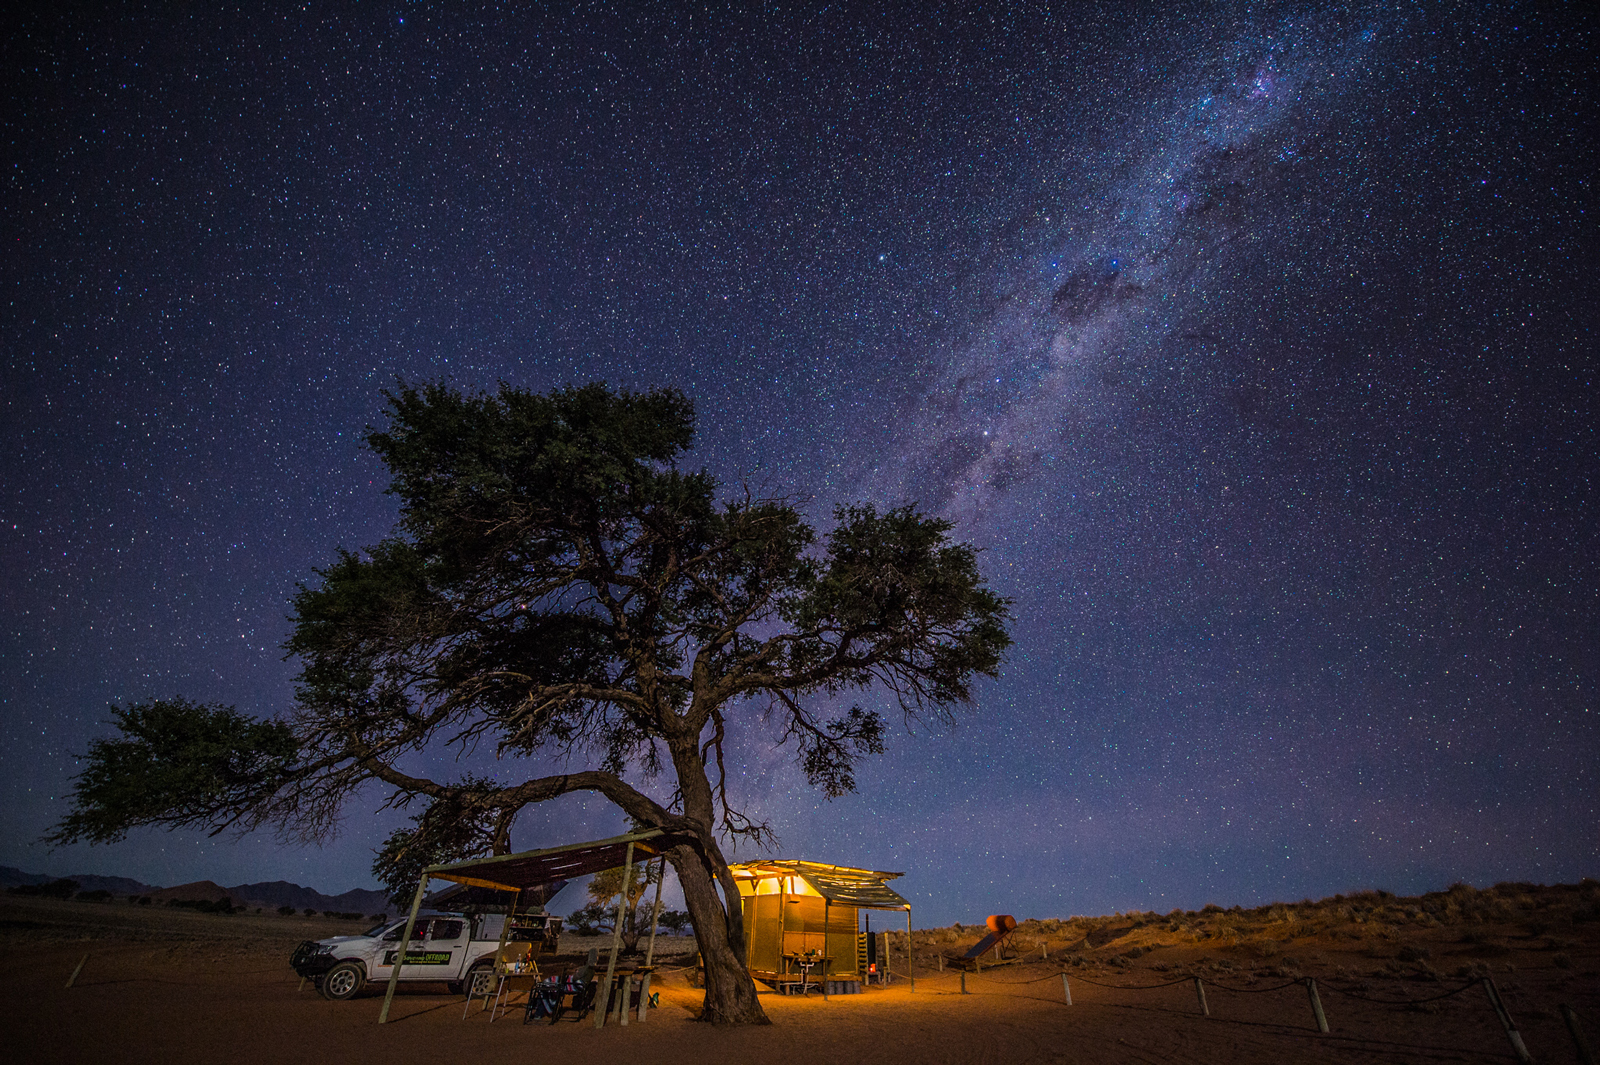 Namib Milky Way camping in Orion Campsite, NamibRand, Namibia ©Denis Roschlau